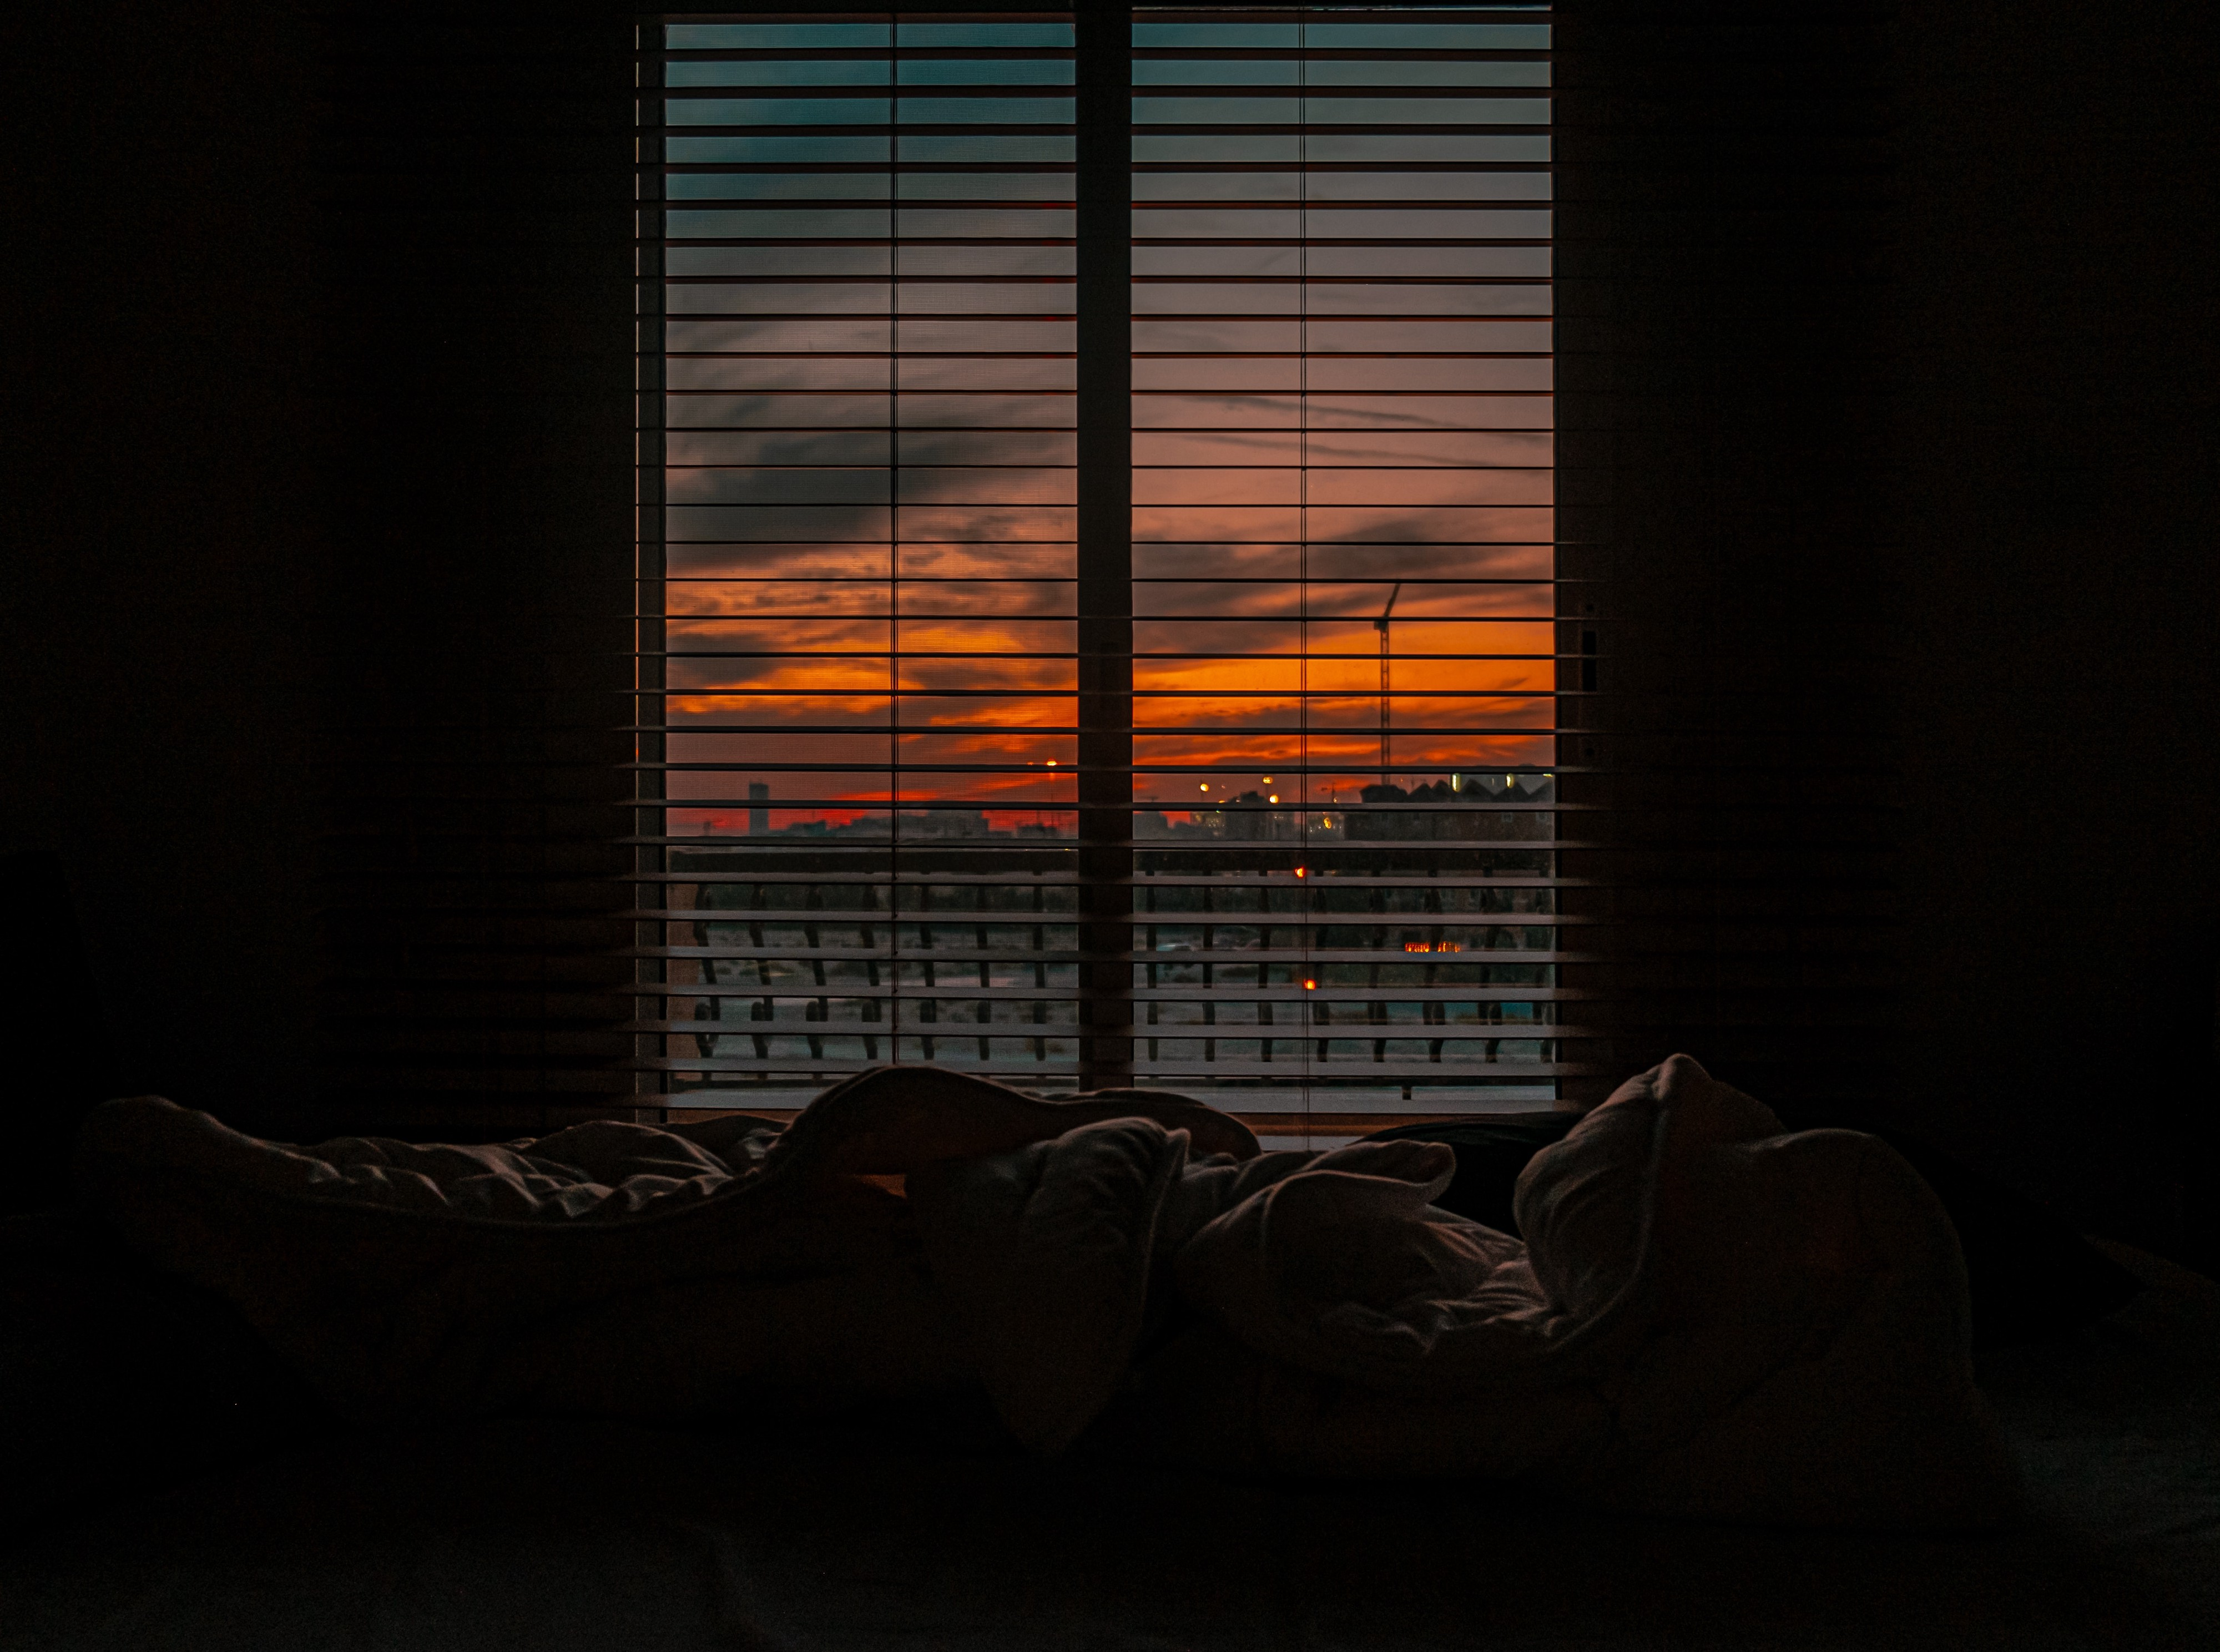 crumpled-blanket-in-dark-room-at-sunset